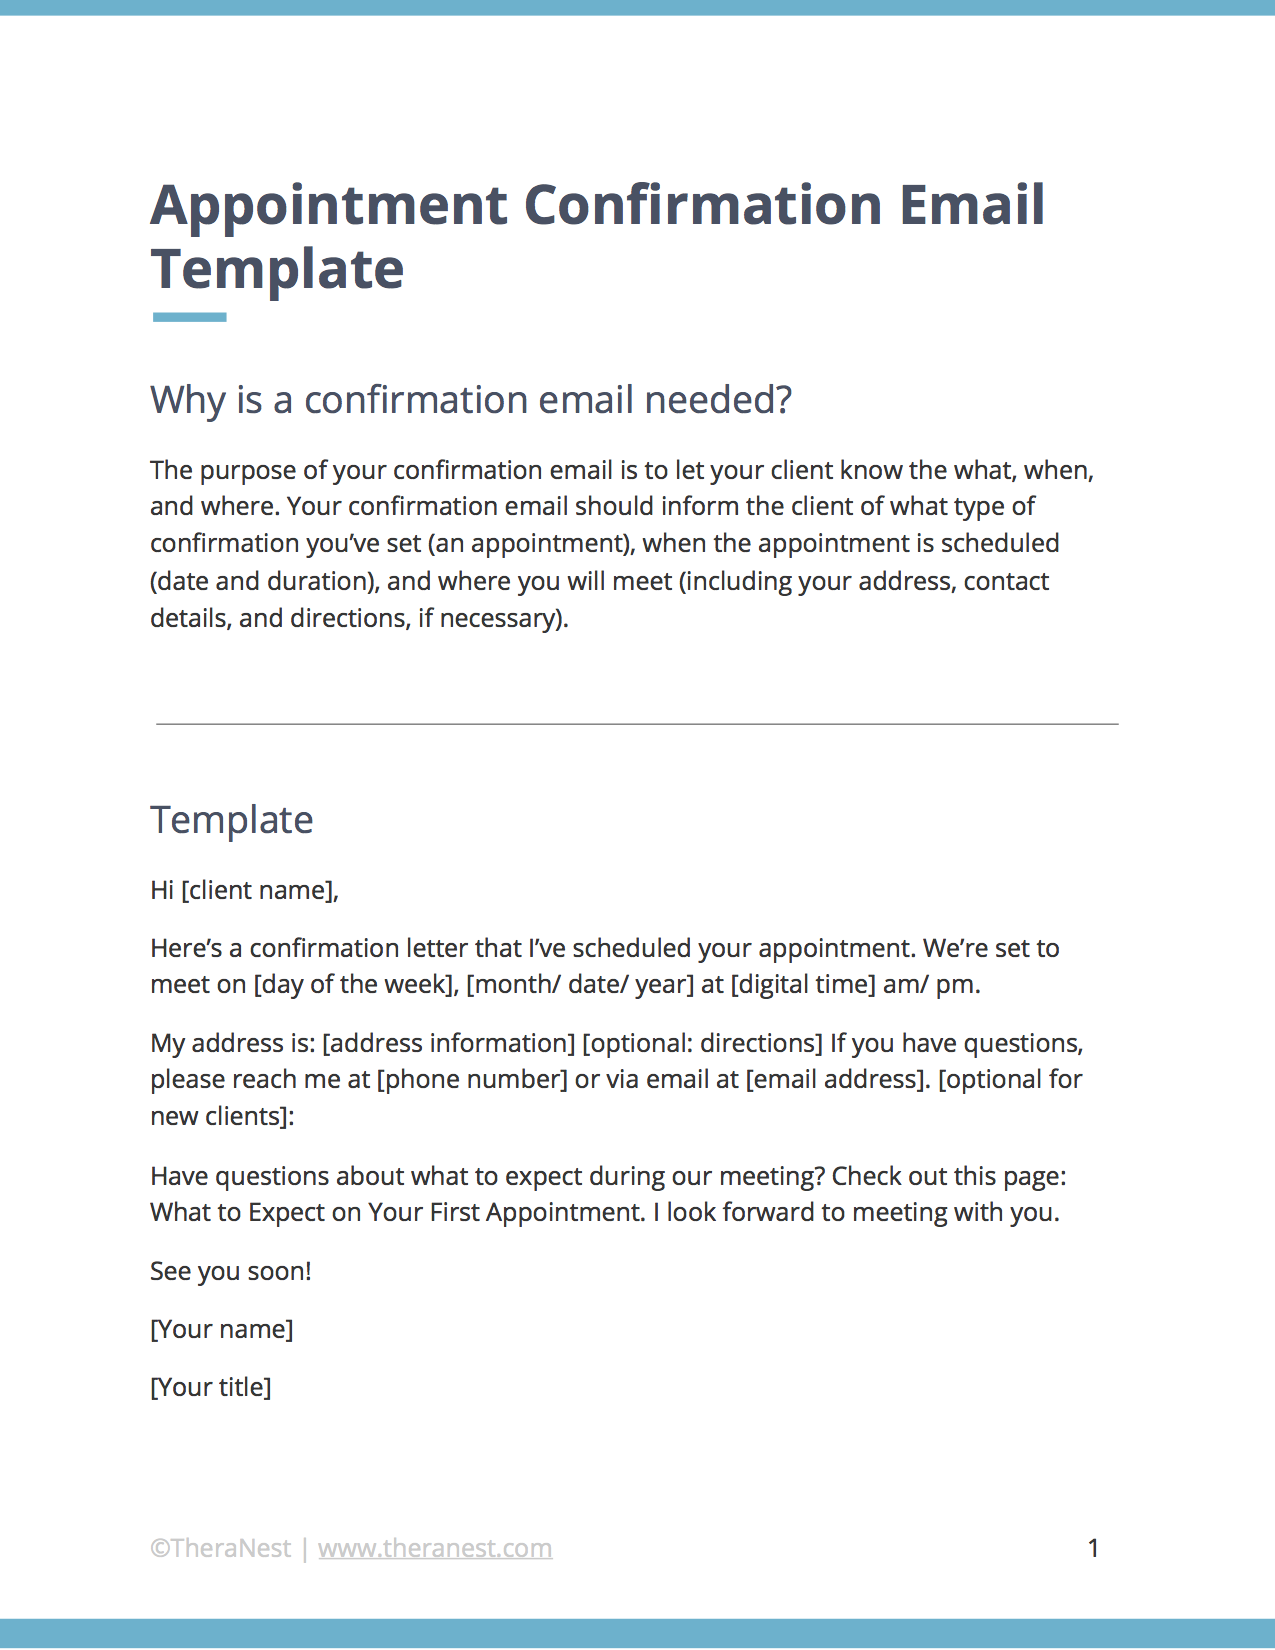 Appointment Confirmation Email Template for Therapists. | TheraNest ...